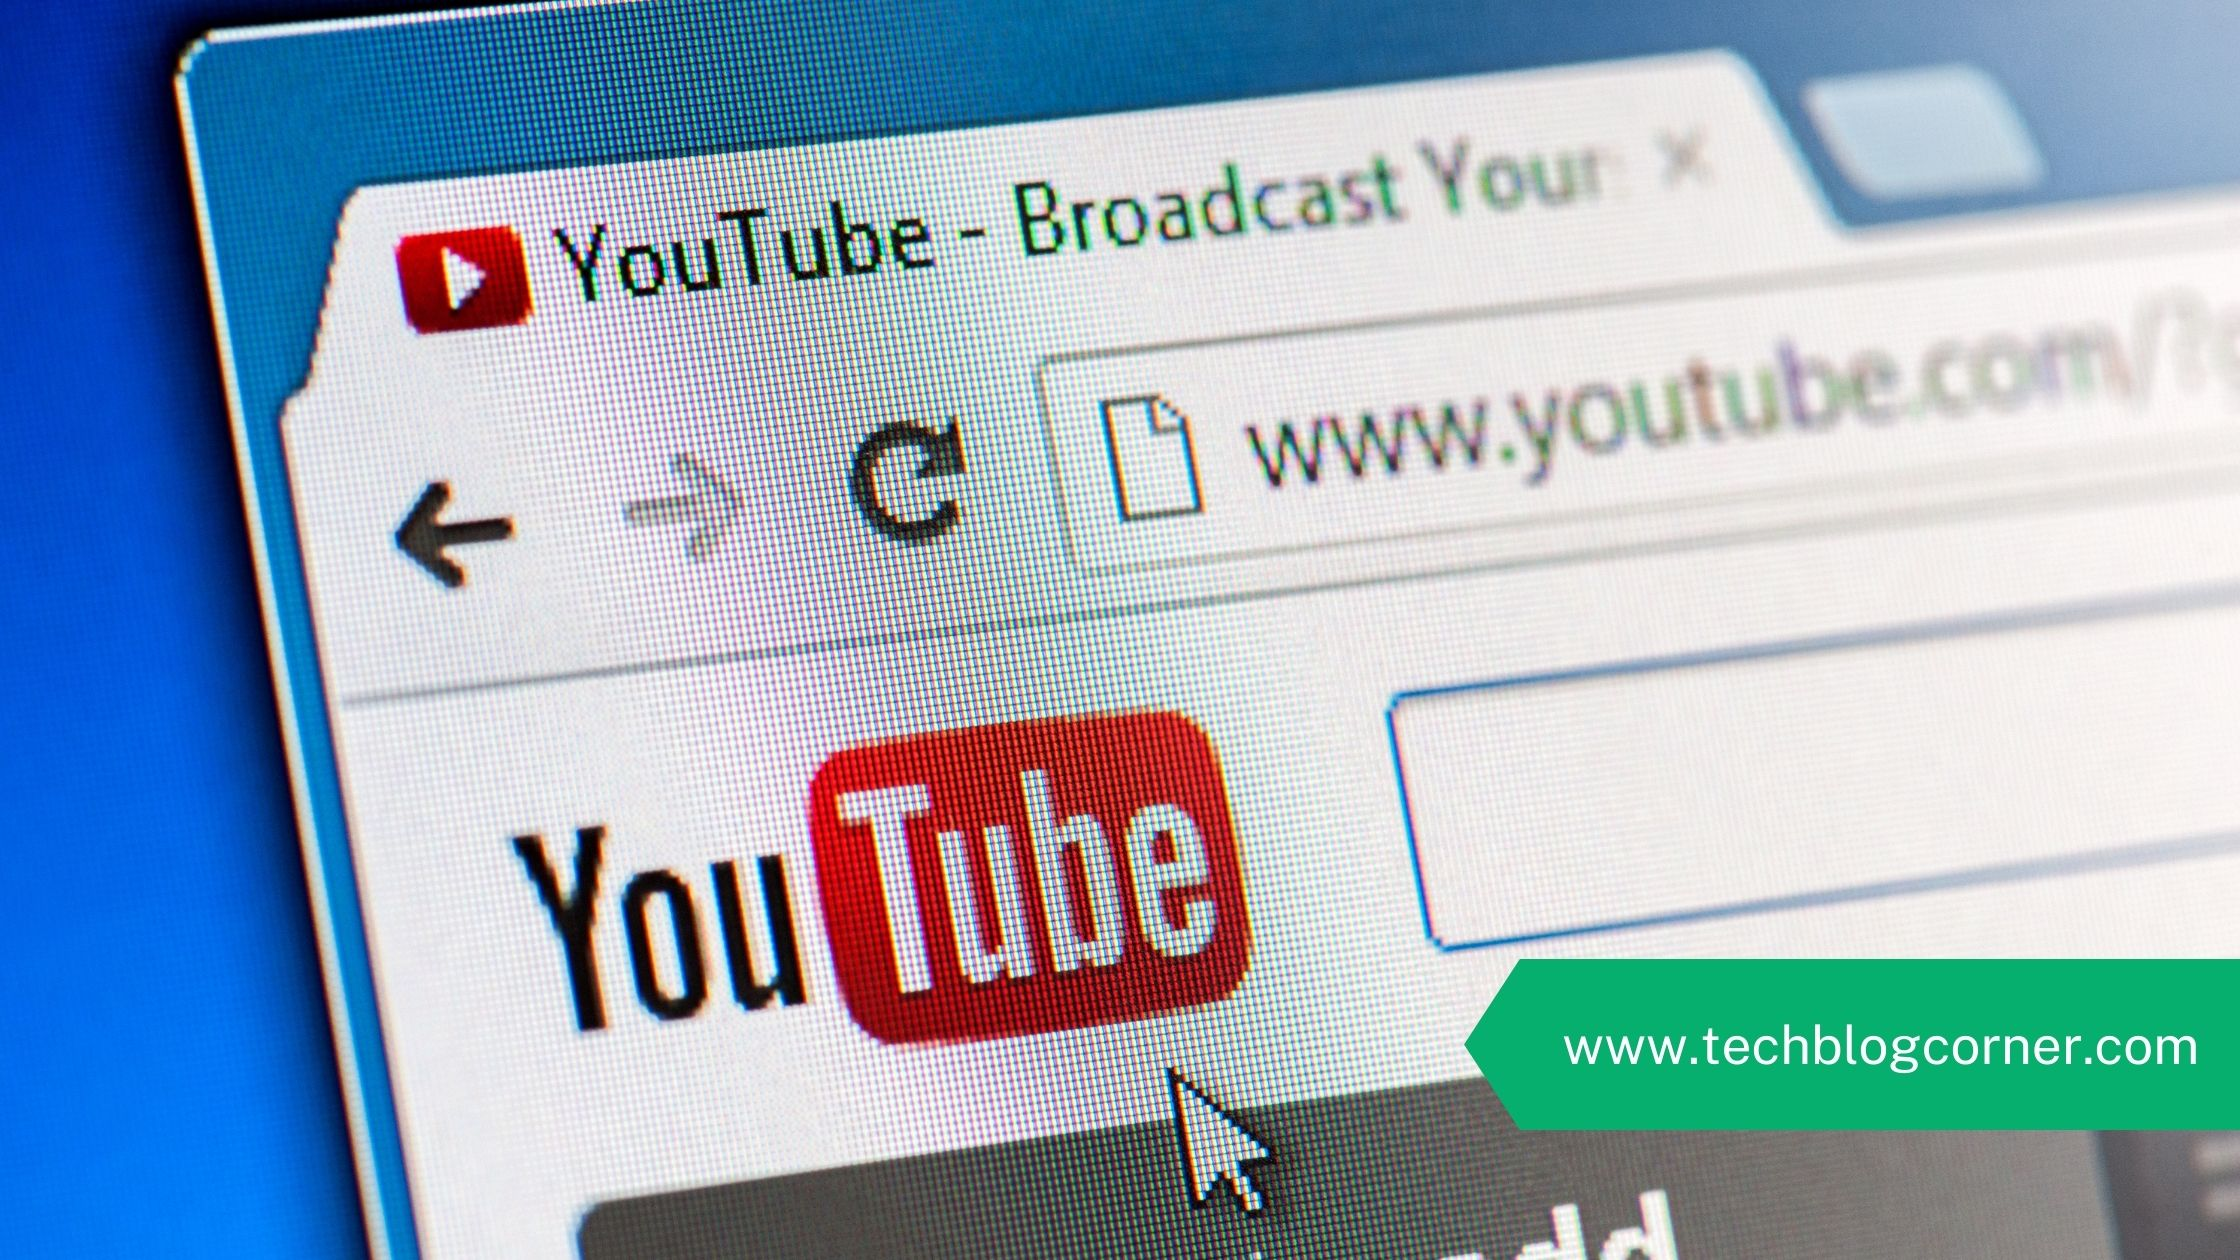 How to add timestamps in YouTube comments or descriptions